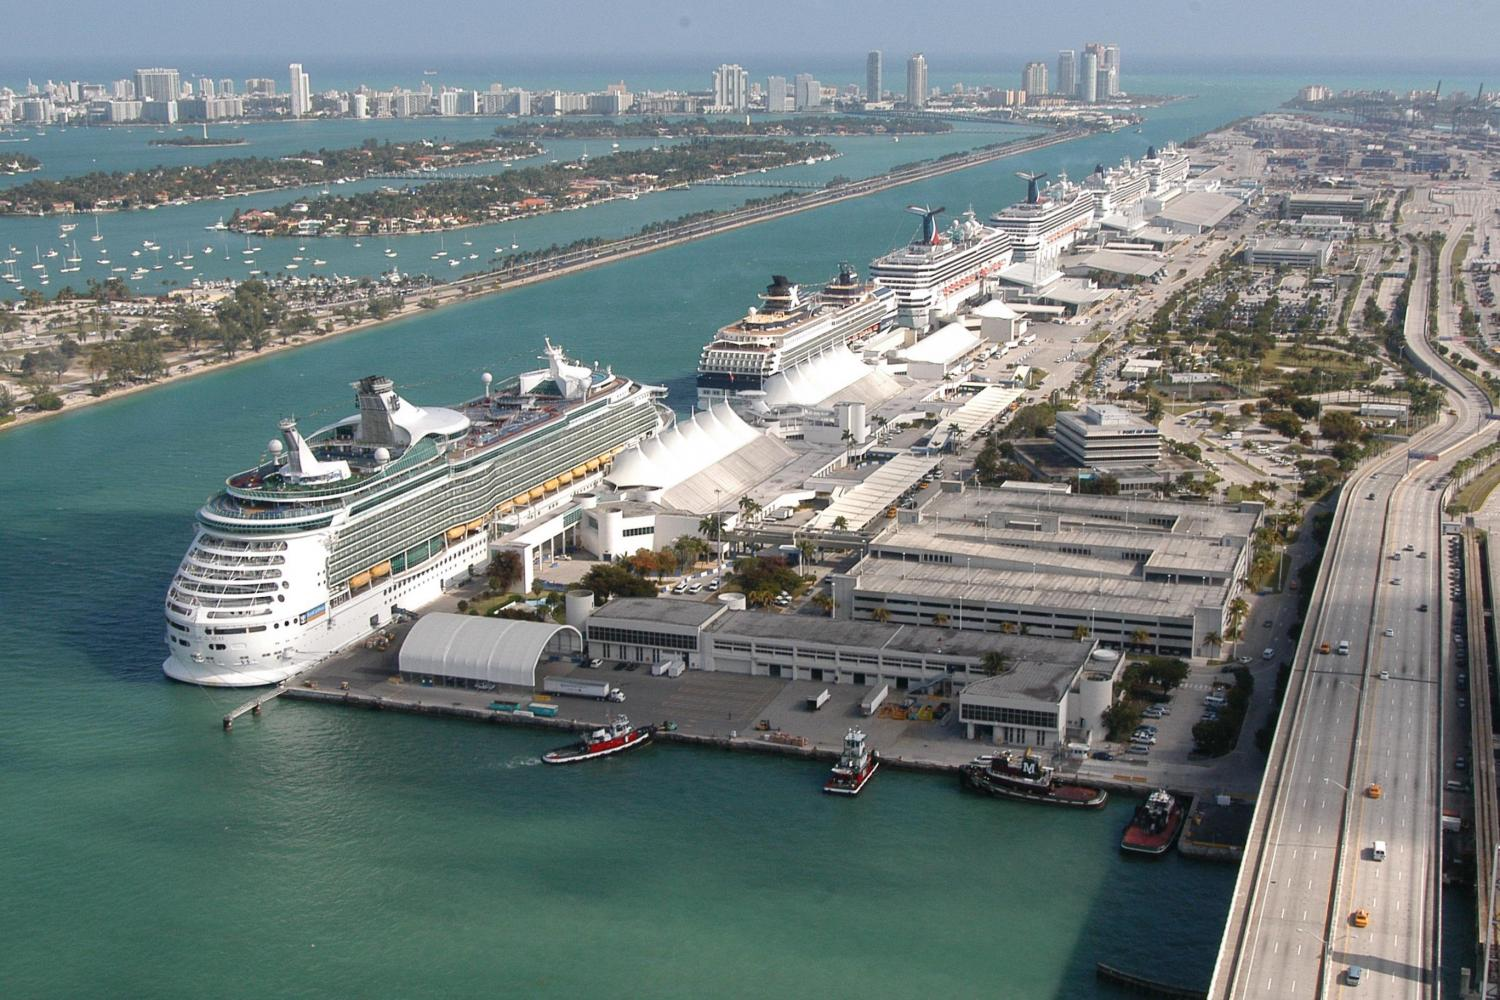 port-of-miami-pictures-1-2.jpg